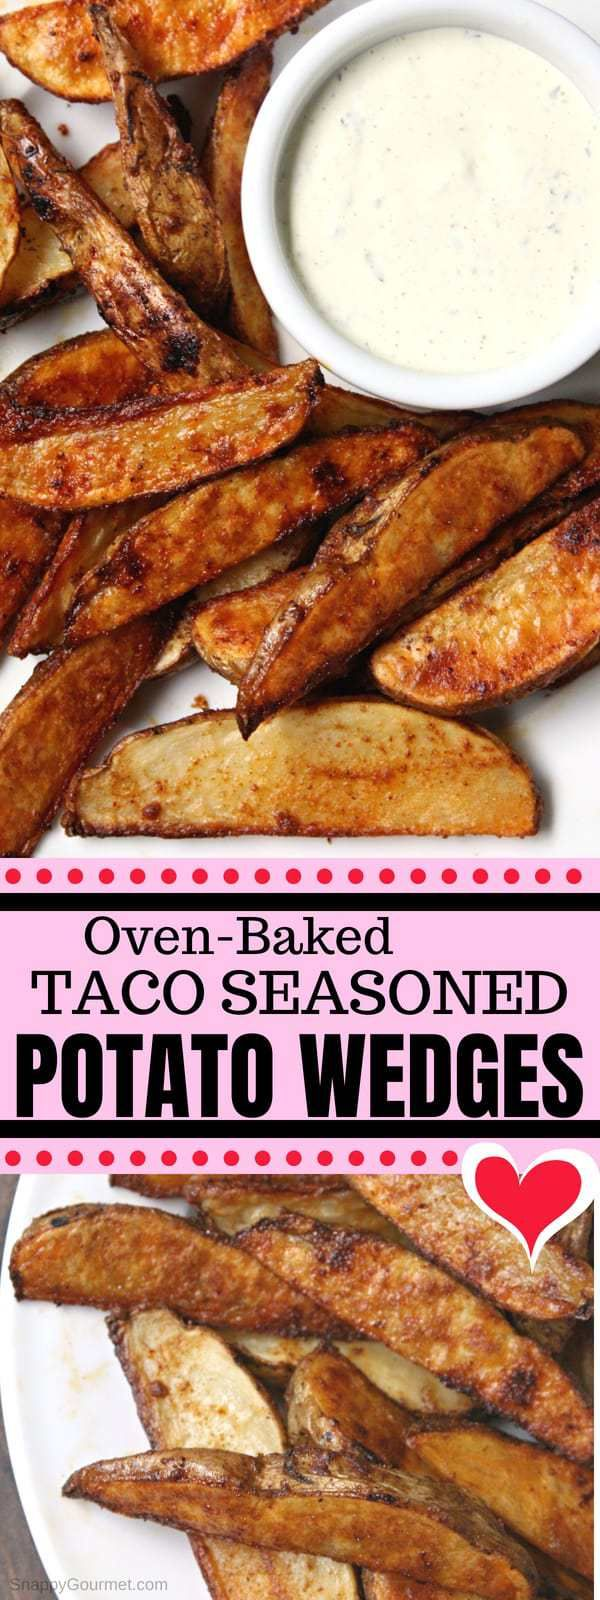 Oven Baked Potato Wedges (Taco Seasoned)